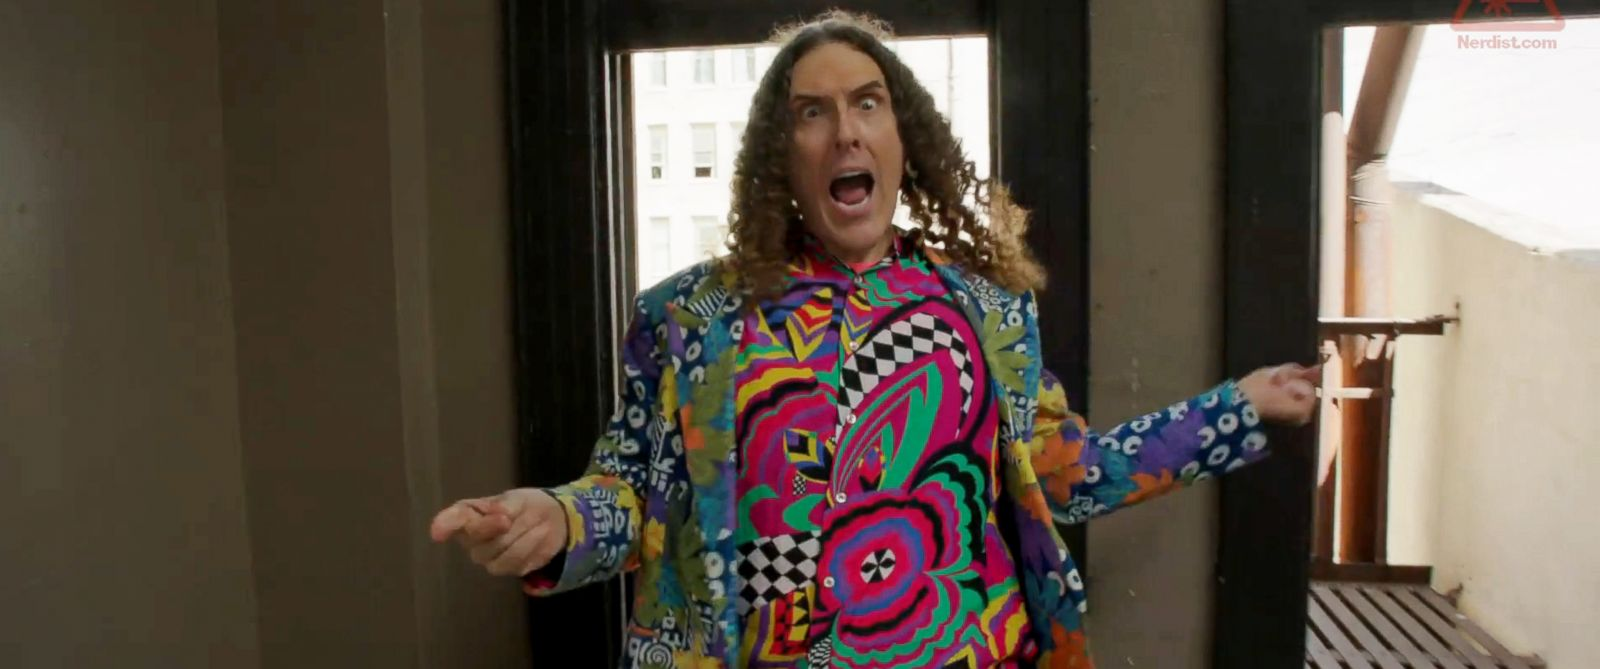 "PHOTO: Weird Al Yankovic is seen in a still made from the ""Tacky"" video released via Nerdist.com on July 14, 2014."